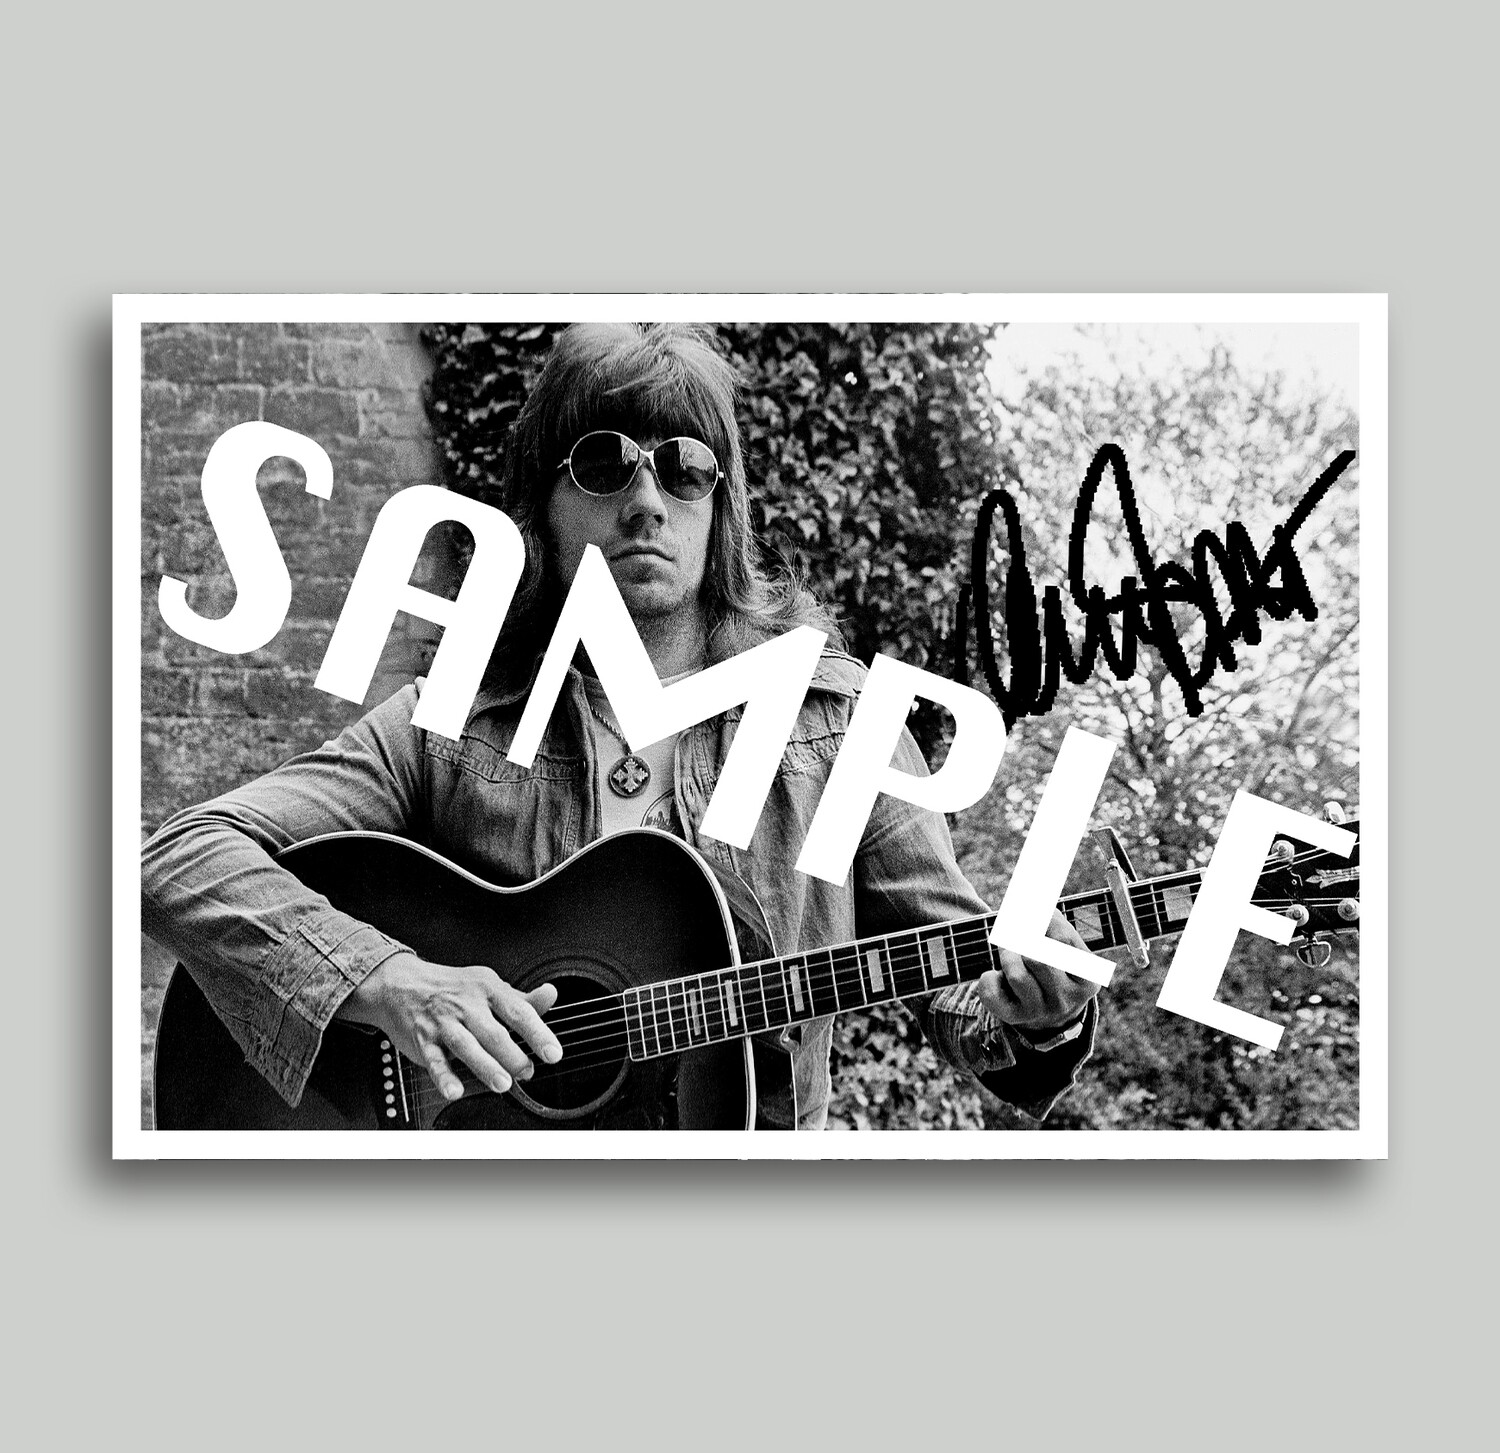 Personalized Signed Photo By Andy Scott (Limited of 100) - PRE-ORDER